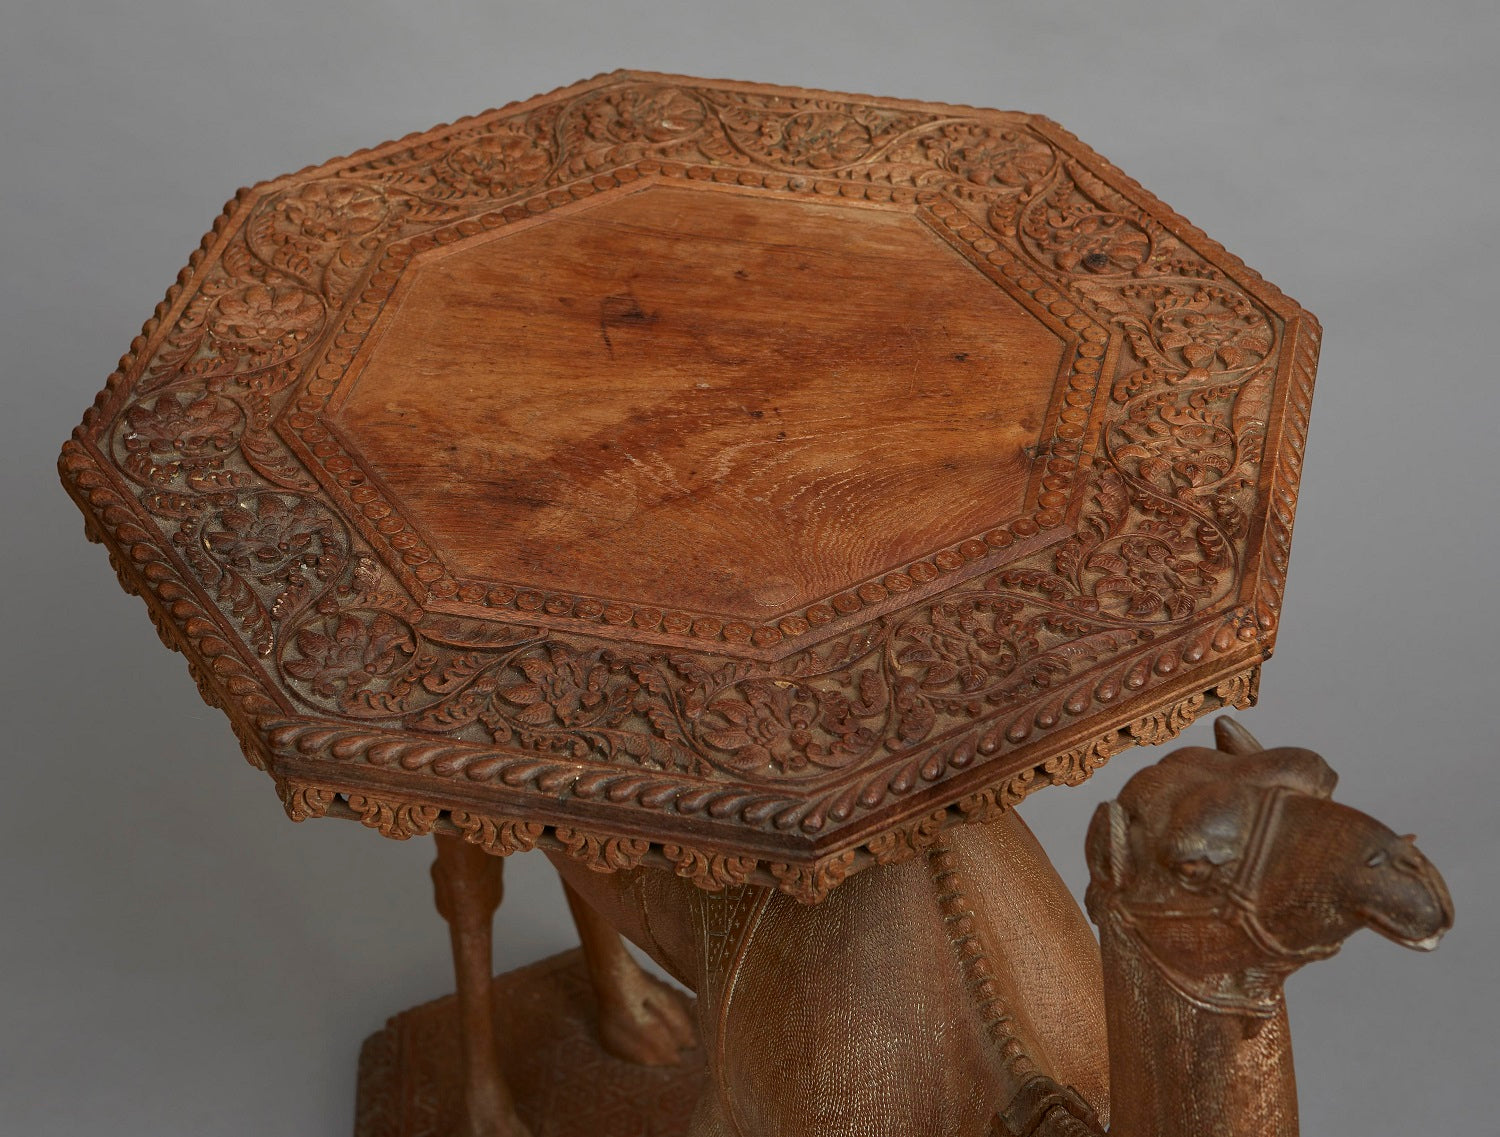 Anglo-Indian Hardwood Camel Table